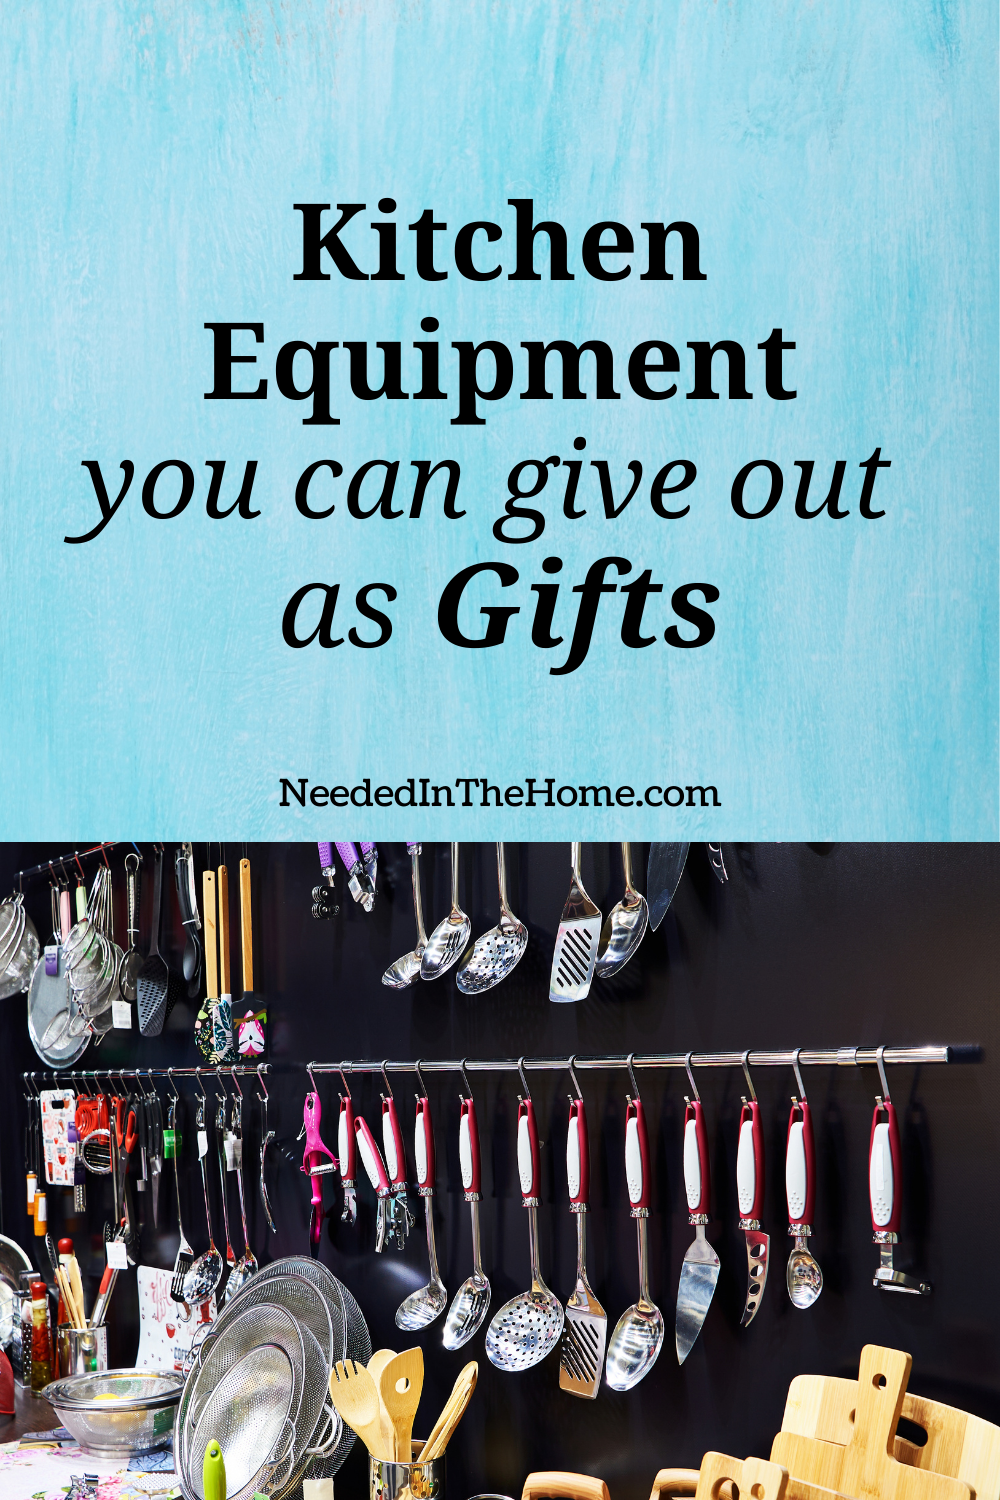 pinterest-pin-description kitchen equipment you can give out as gifts utensils strainers neededinthehome